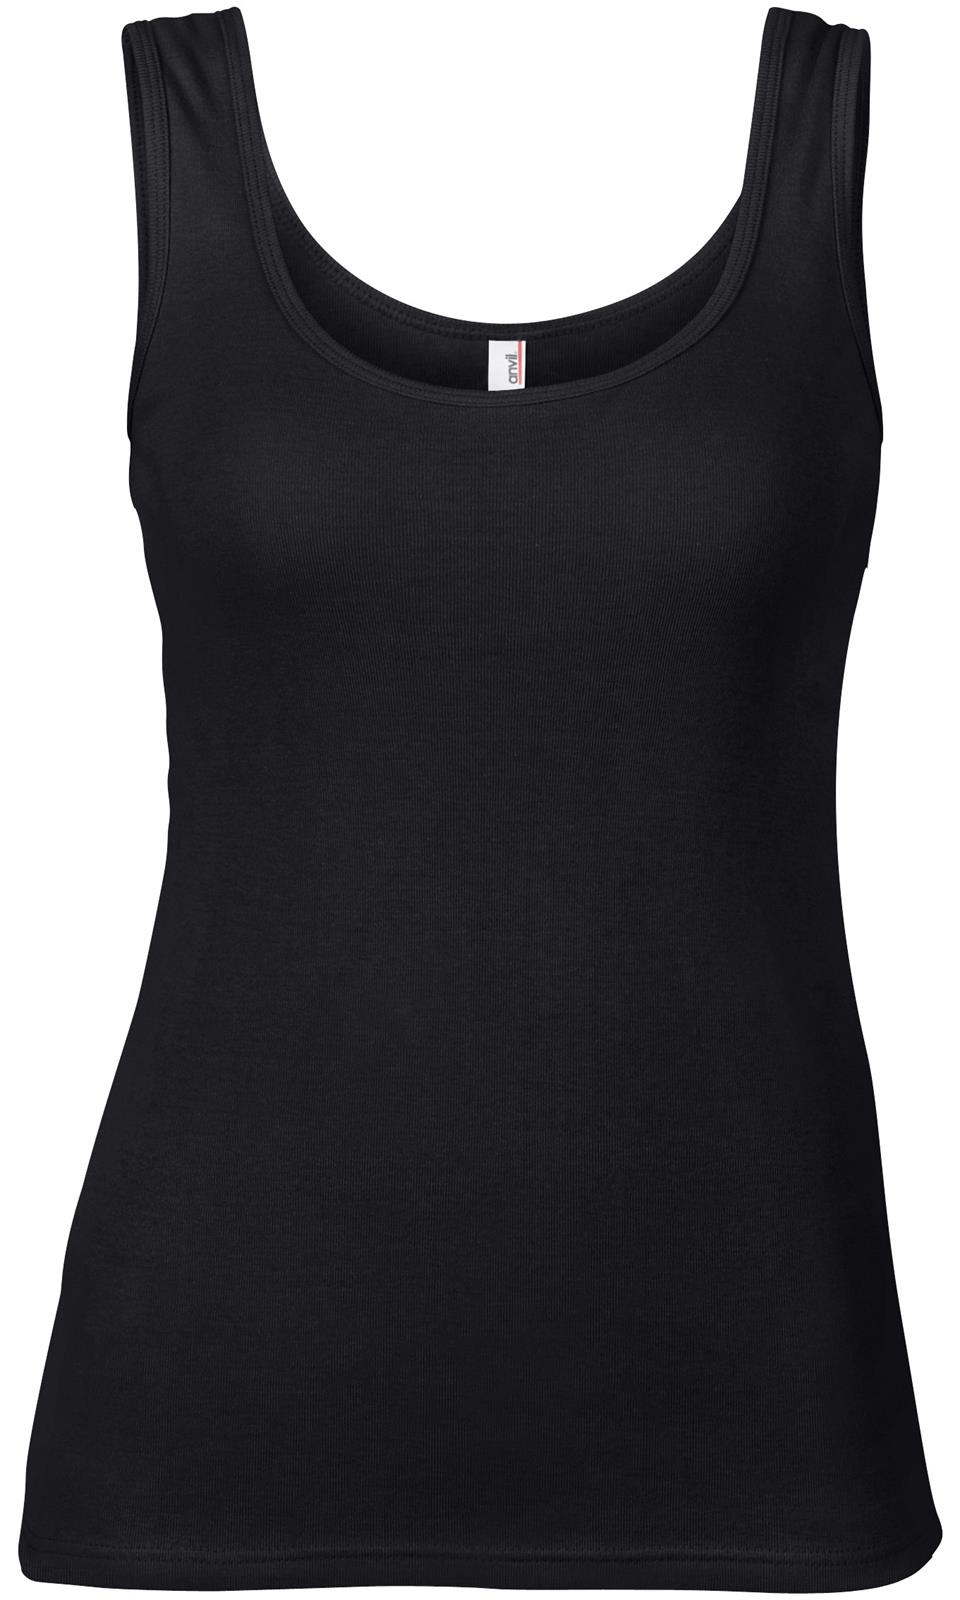 Enjoy free shipping and easy returns every day at Kohl's. Find great deals on Womens Vests Tops at Kohl's today!